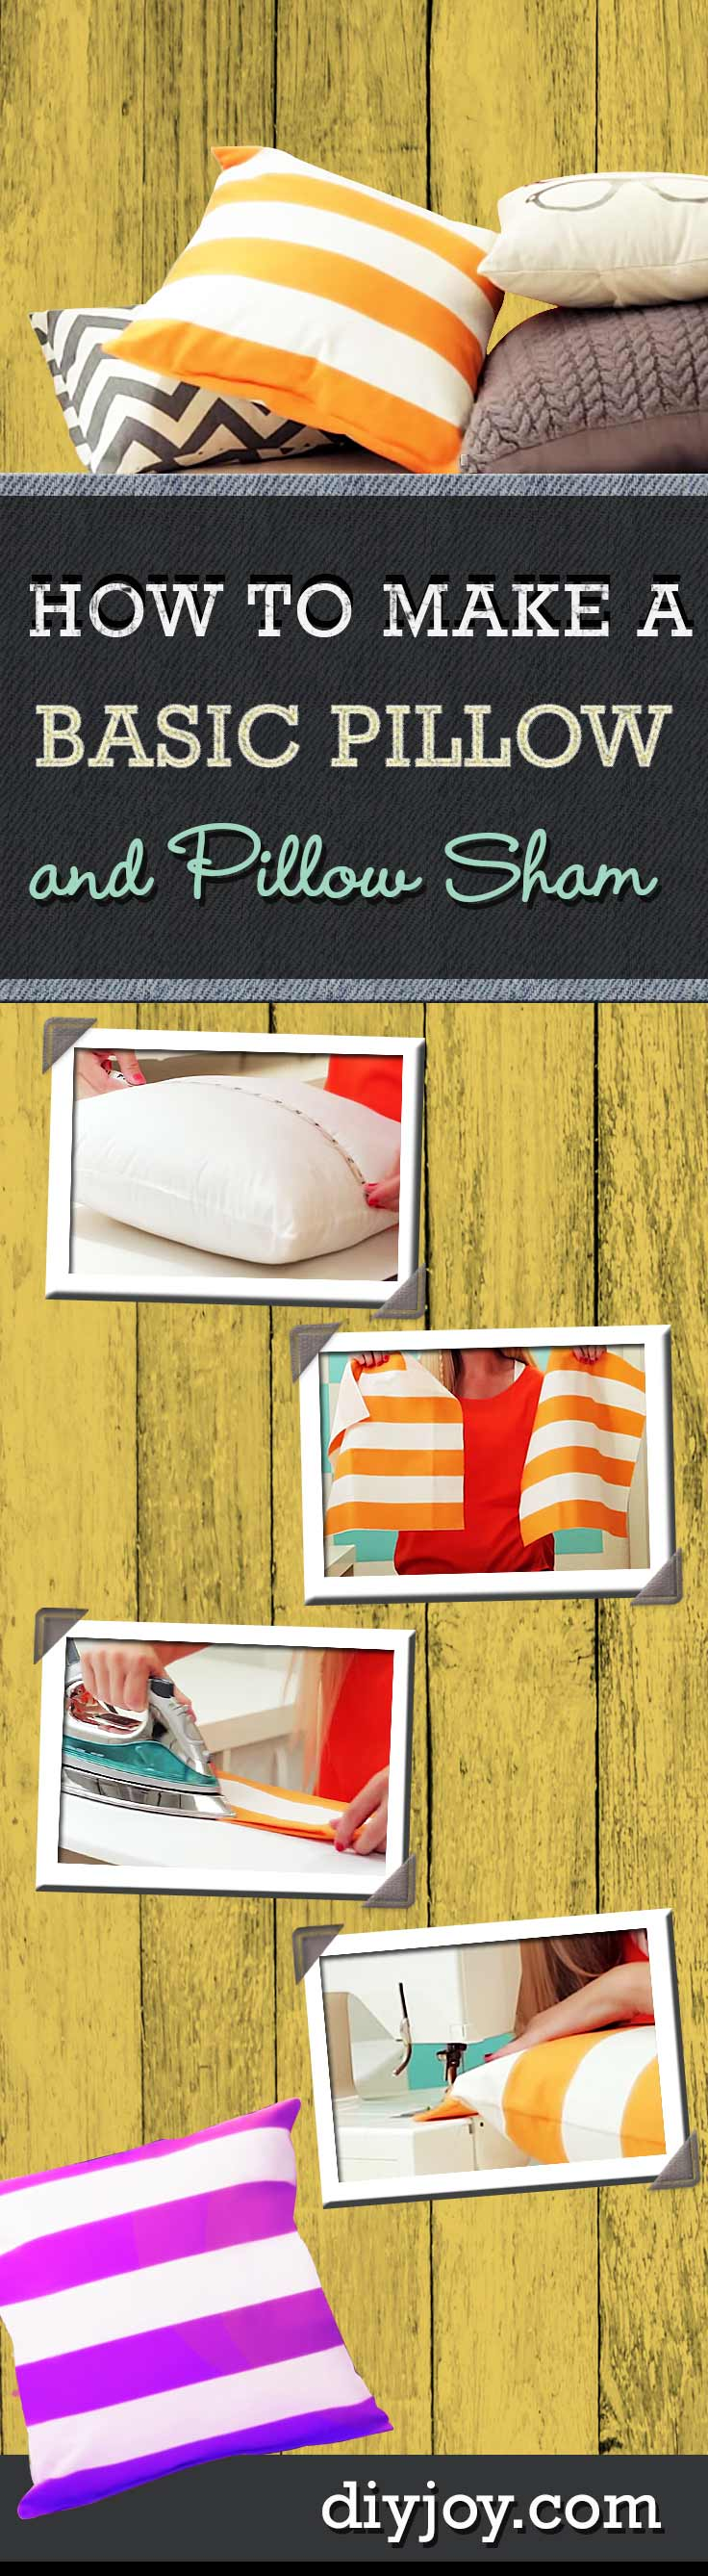 How to Make A Pillow Sham - Sewing Tutorials for Beginners and Easy DIY Projects